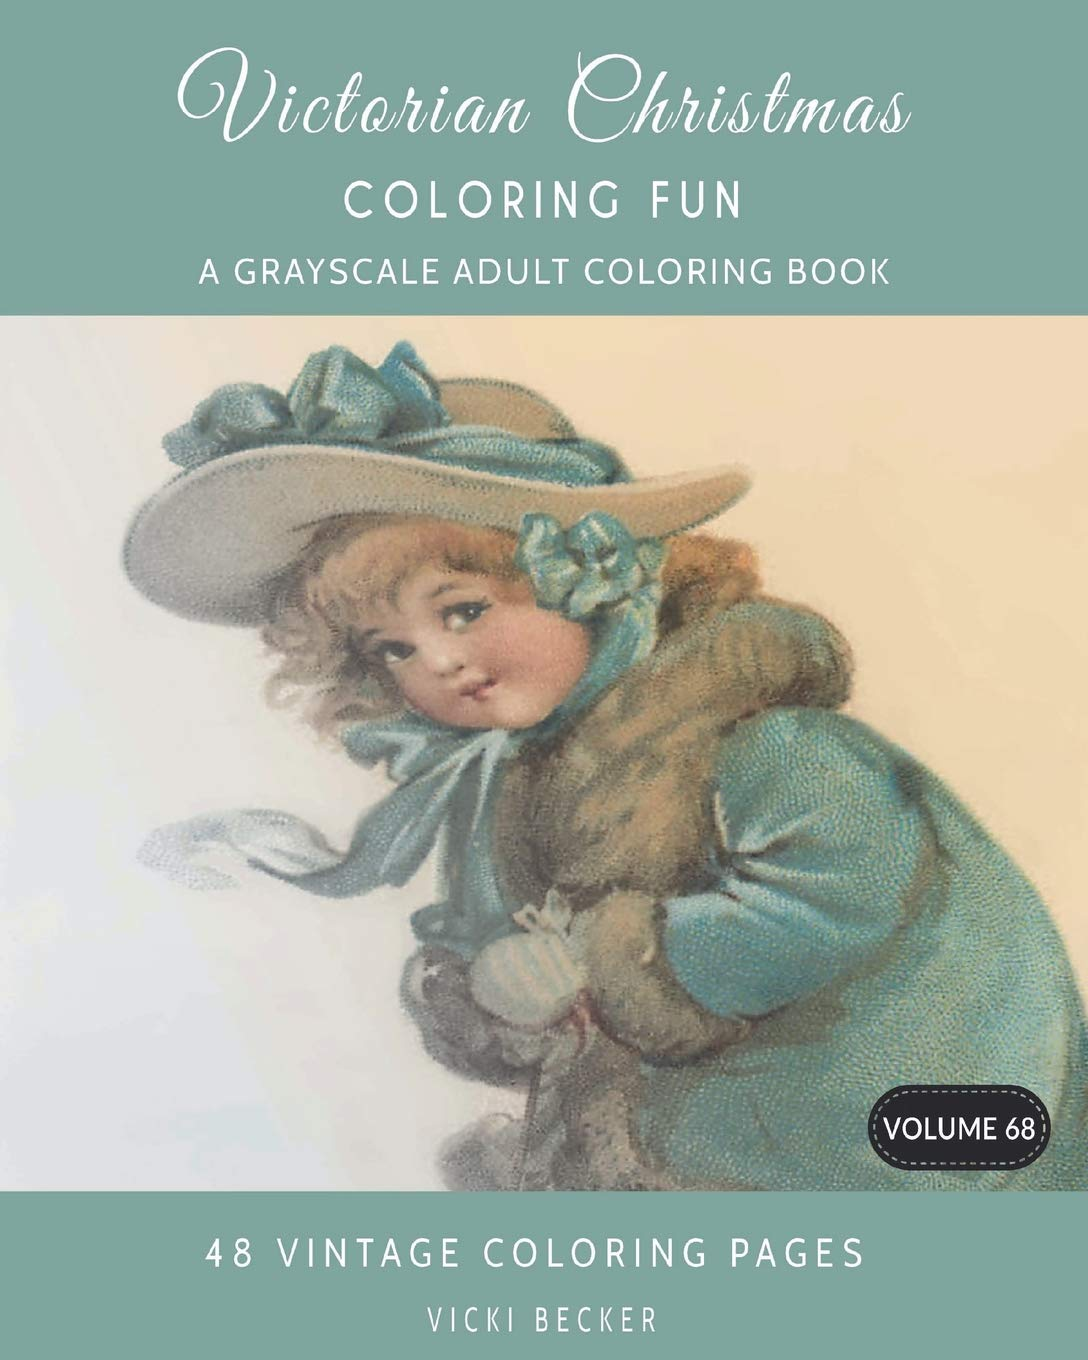 amazoncom victorian christmas coloring fun a grayscale adult coloring book grayscale coloring books volume 68 9781981510252 vicki becker books